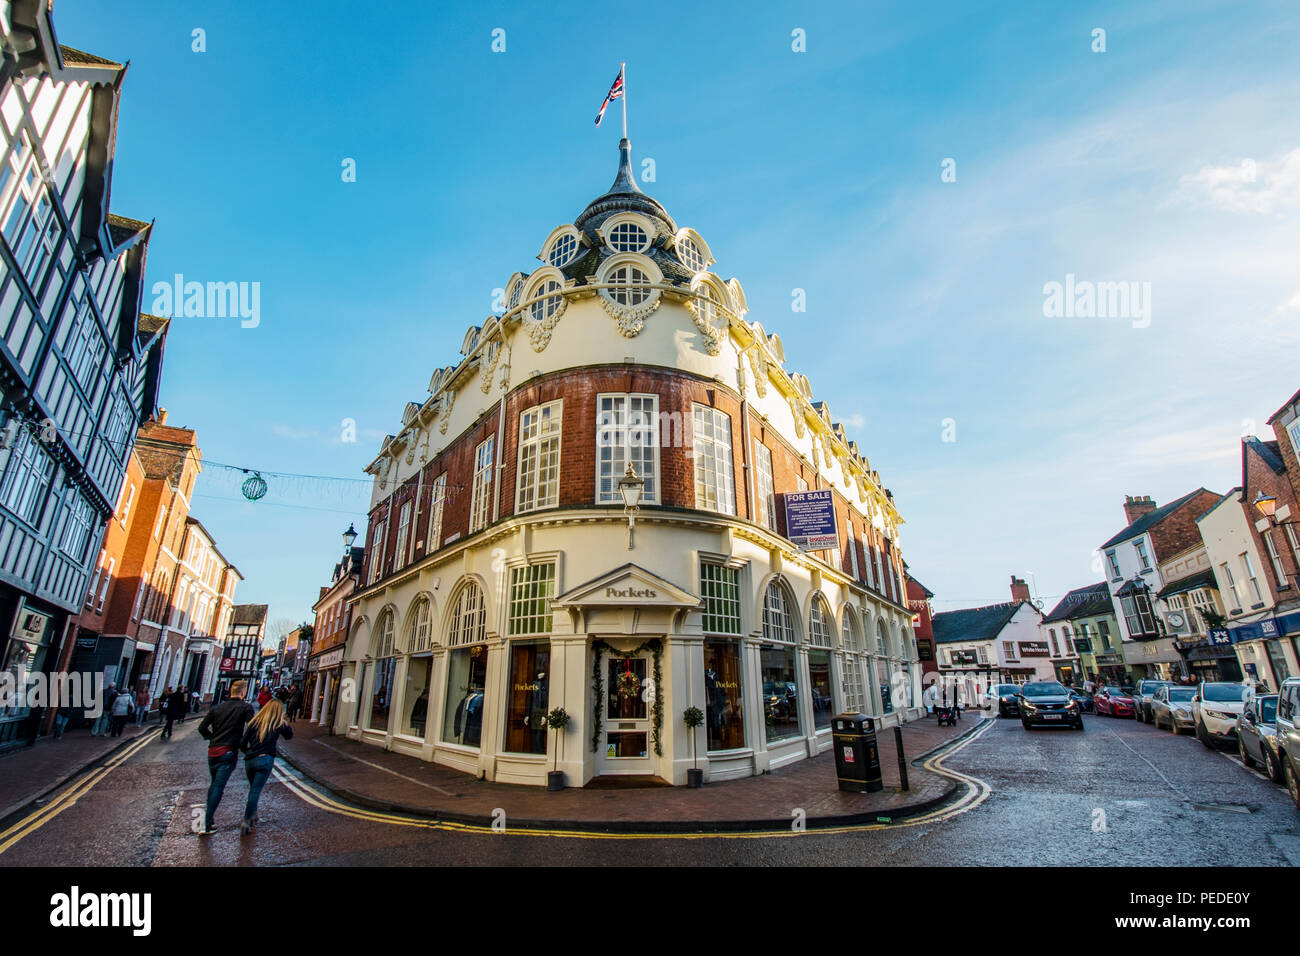 Pockets corner store in Nantwich on a cold clear December day - Stock Image